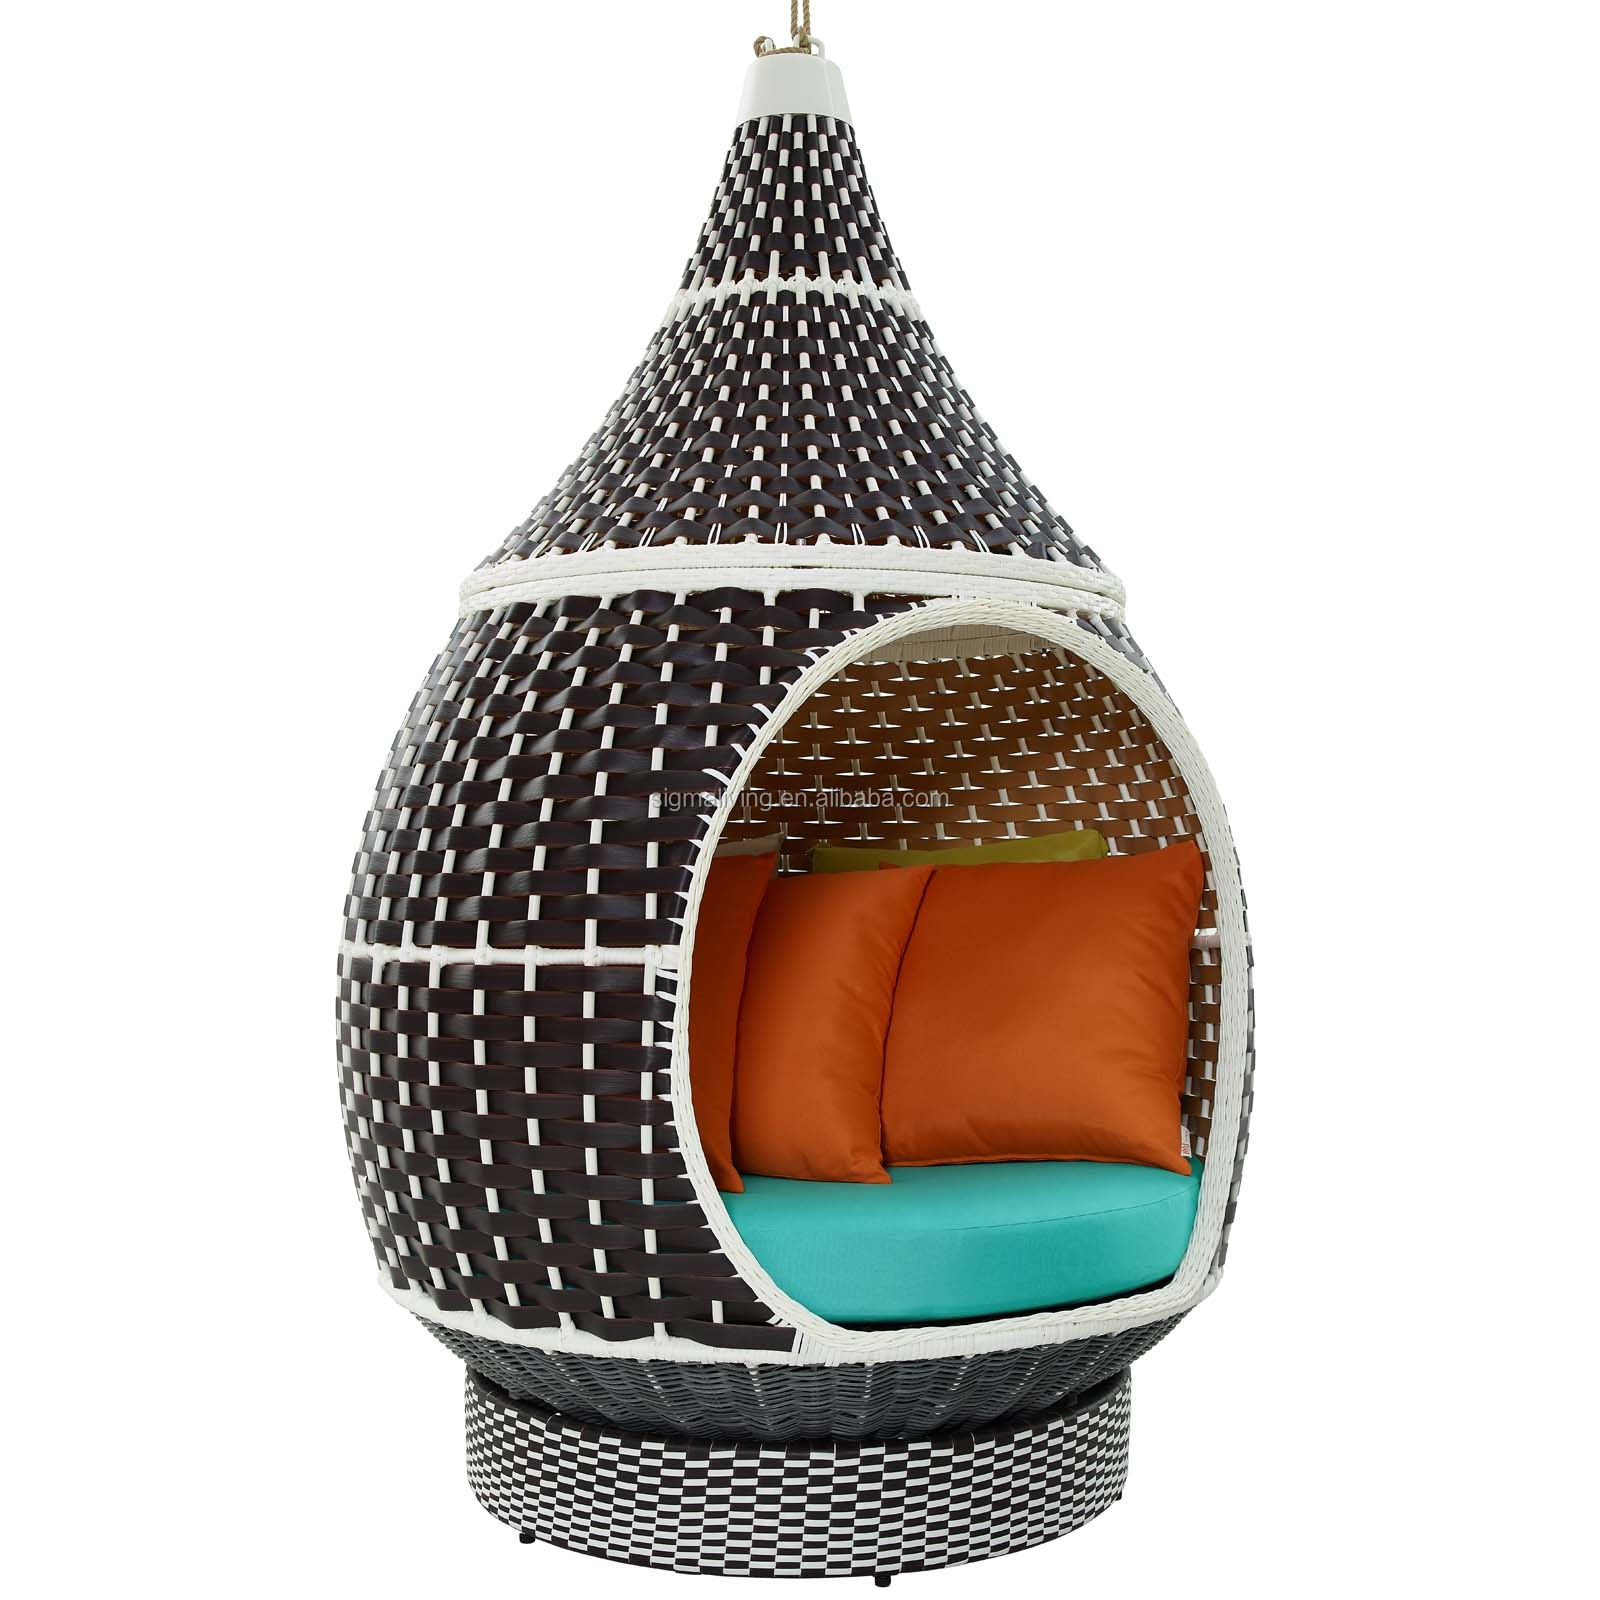 Palace outdoor patio wicker rattan garden sets hanging pod chair furniture set